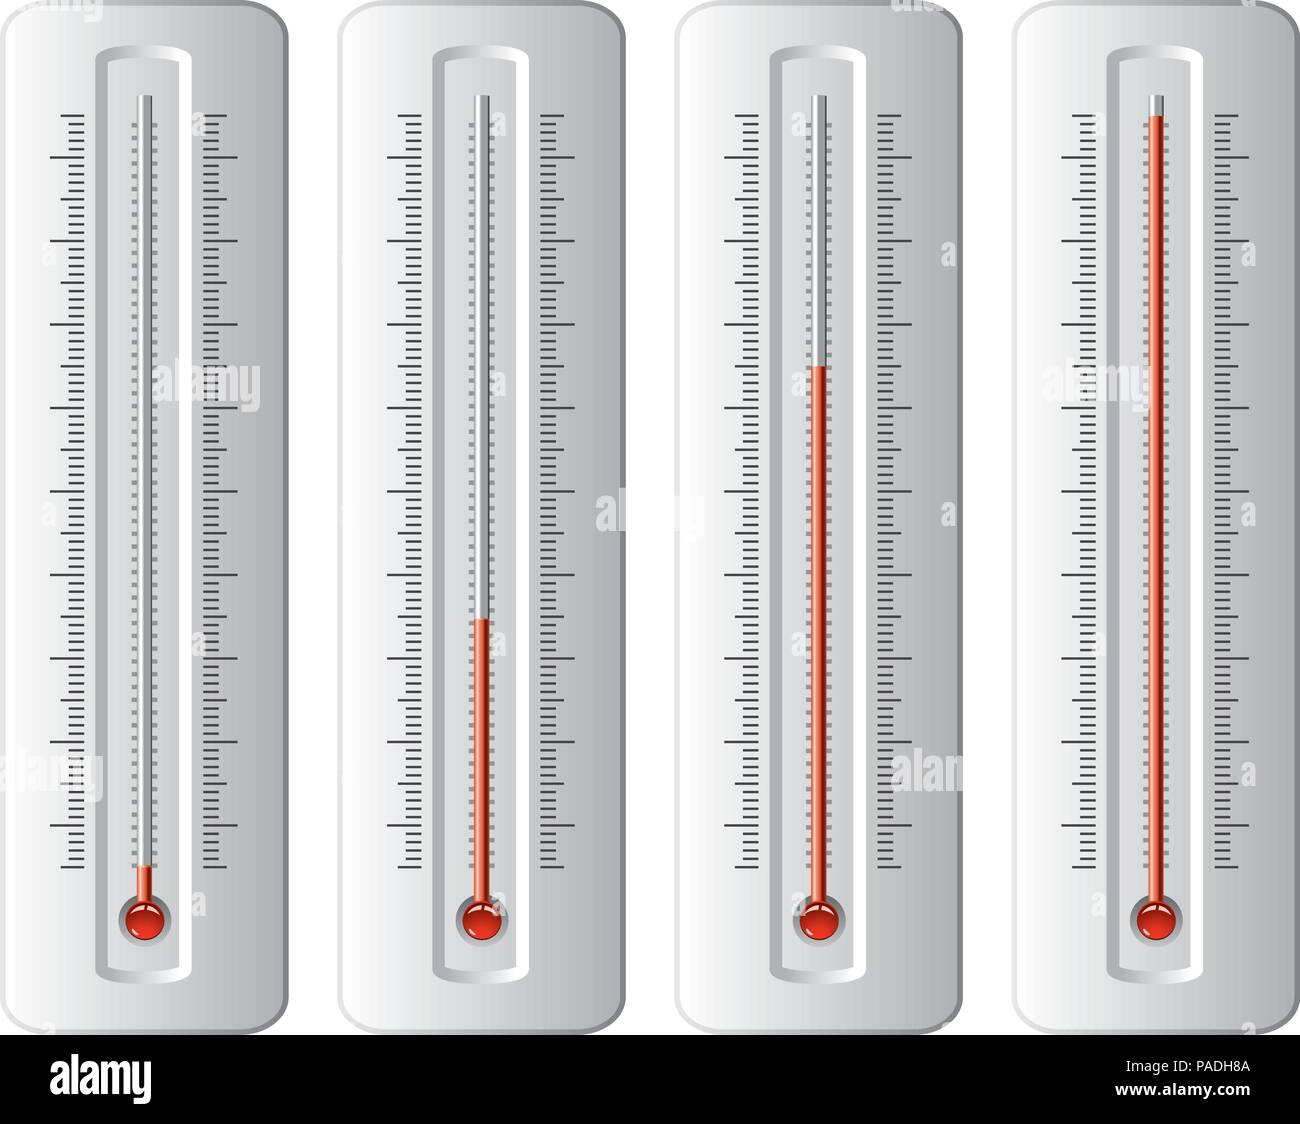 Vector Set Of Thermometers At Different Levels With Degrees No Numbers Red Bulb Temperature